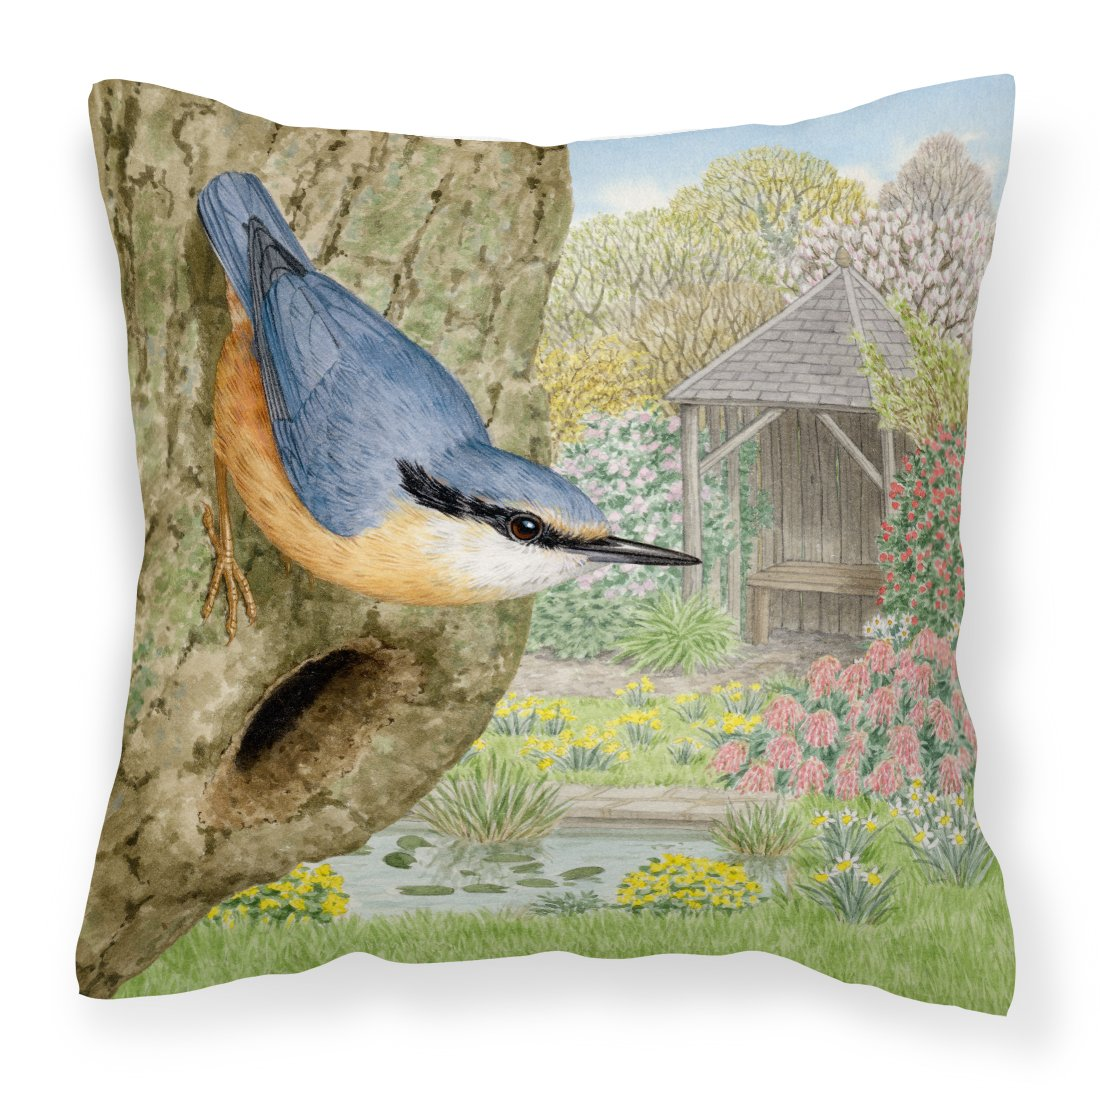 Buy this Nuthatch by Sarah Adams Canvas Decorative Pillow